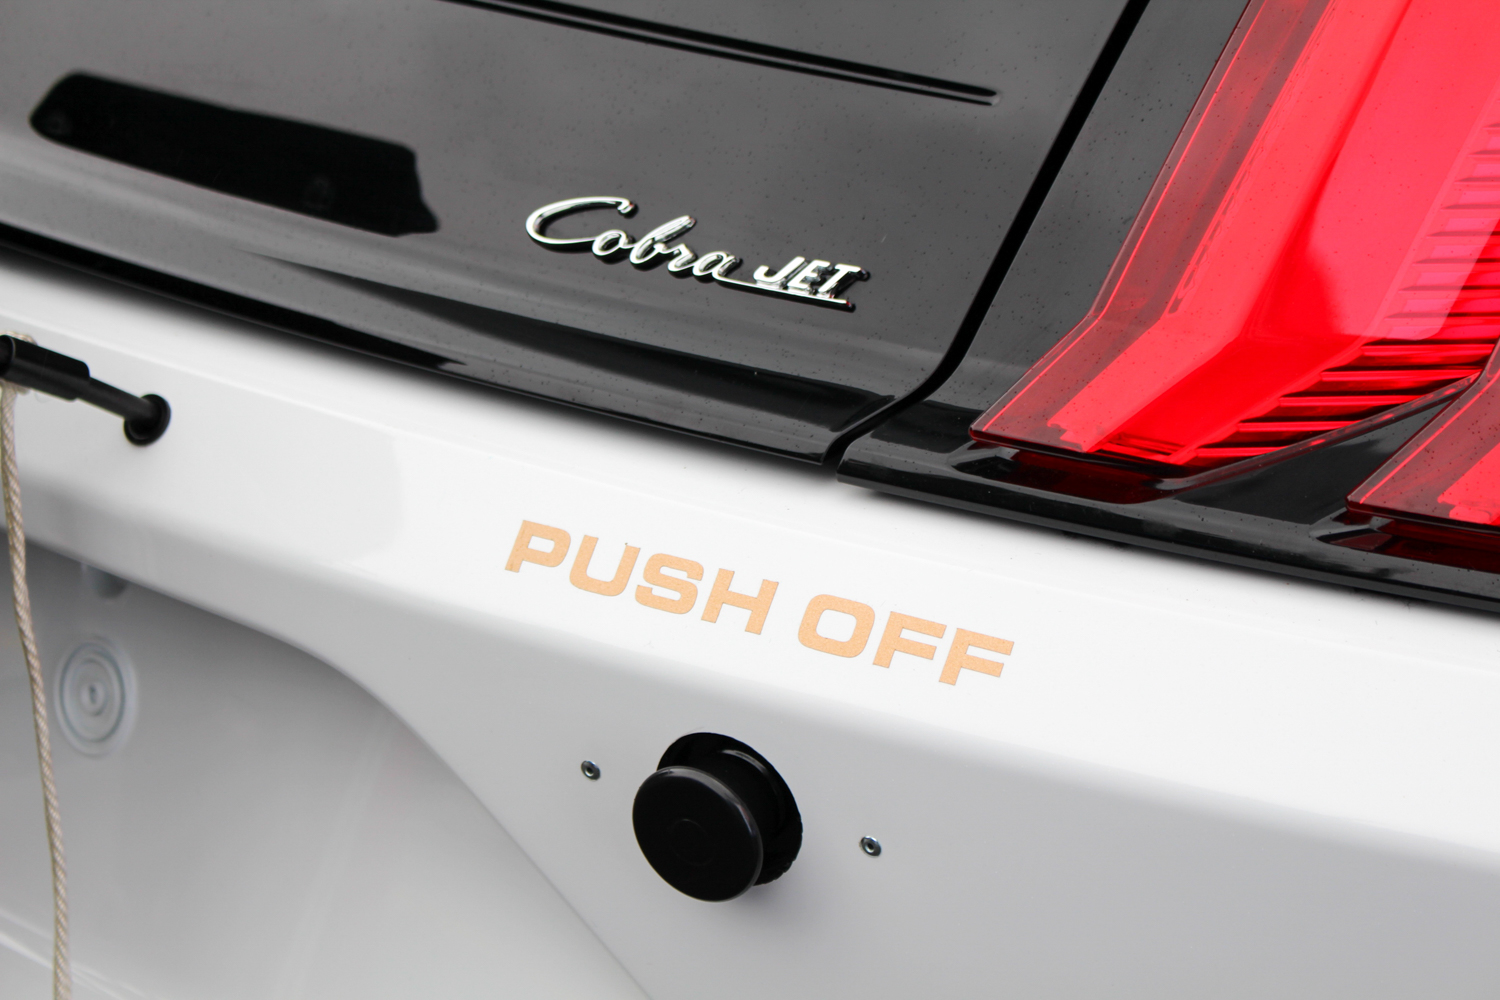 2018 Ford Mustang Cobra Jet badge rear